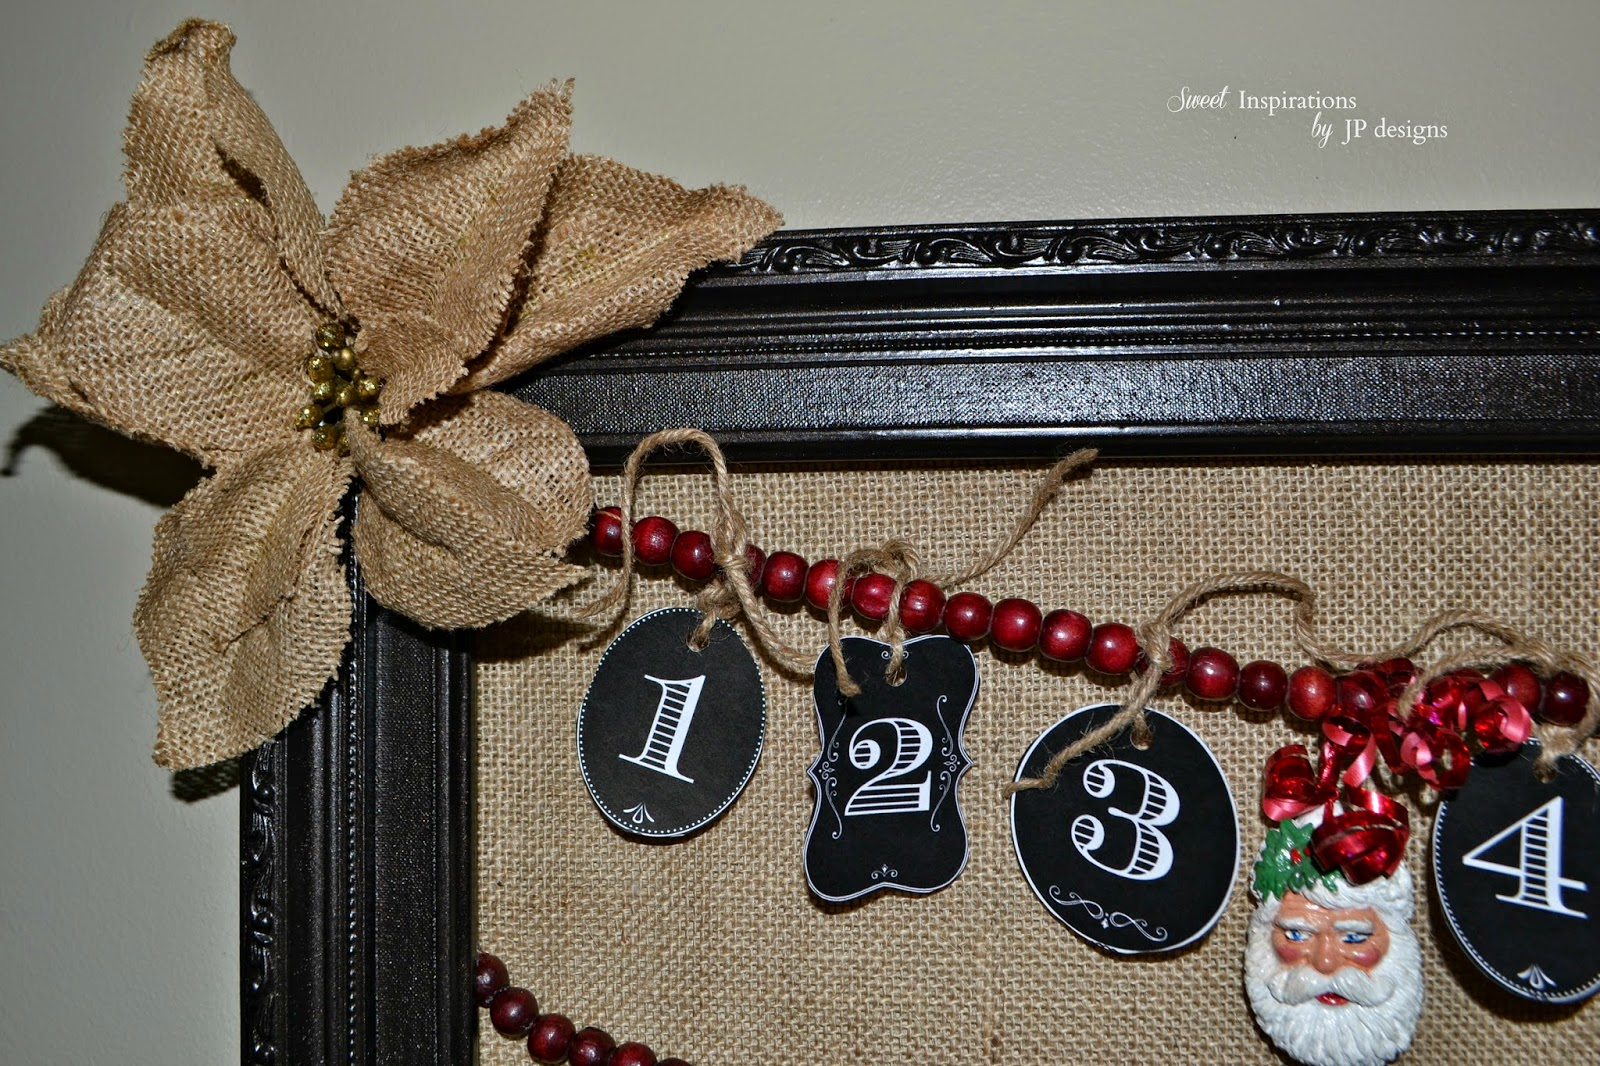 Sweet Inspirations by JP designs: Christmas Countdown Frame with ...